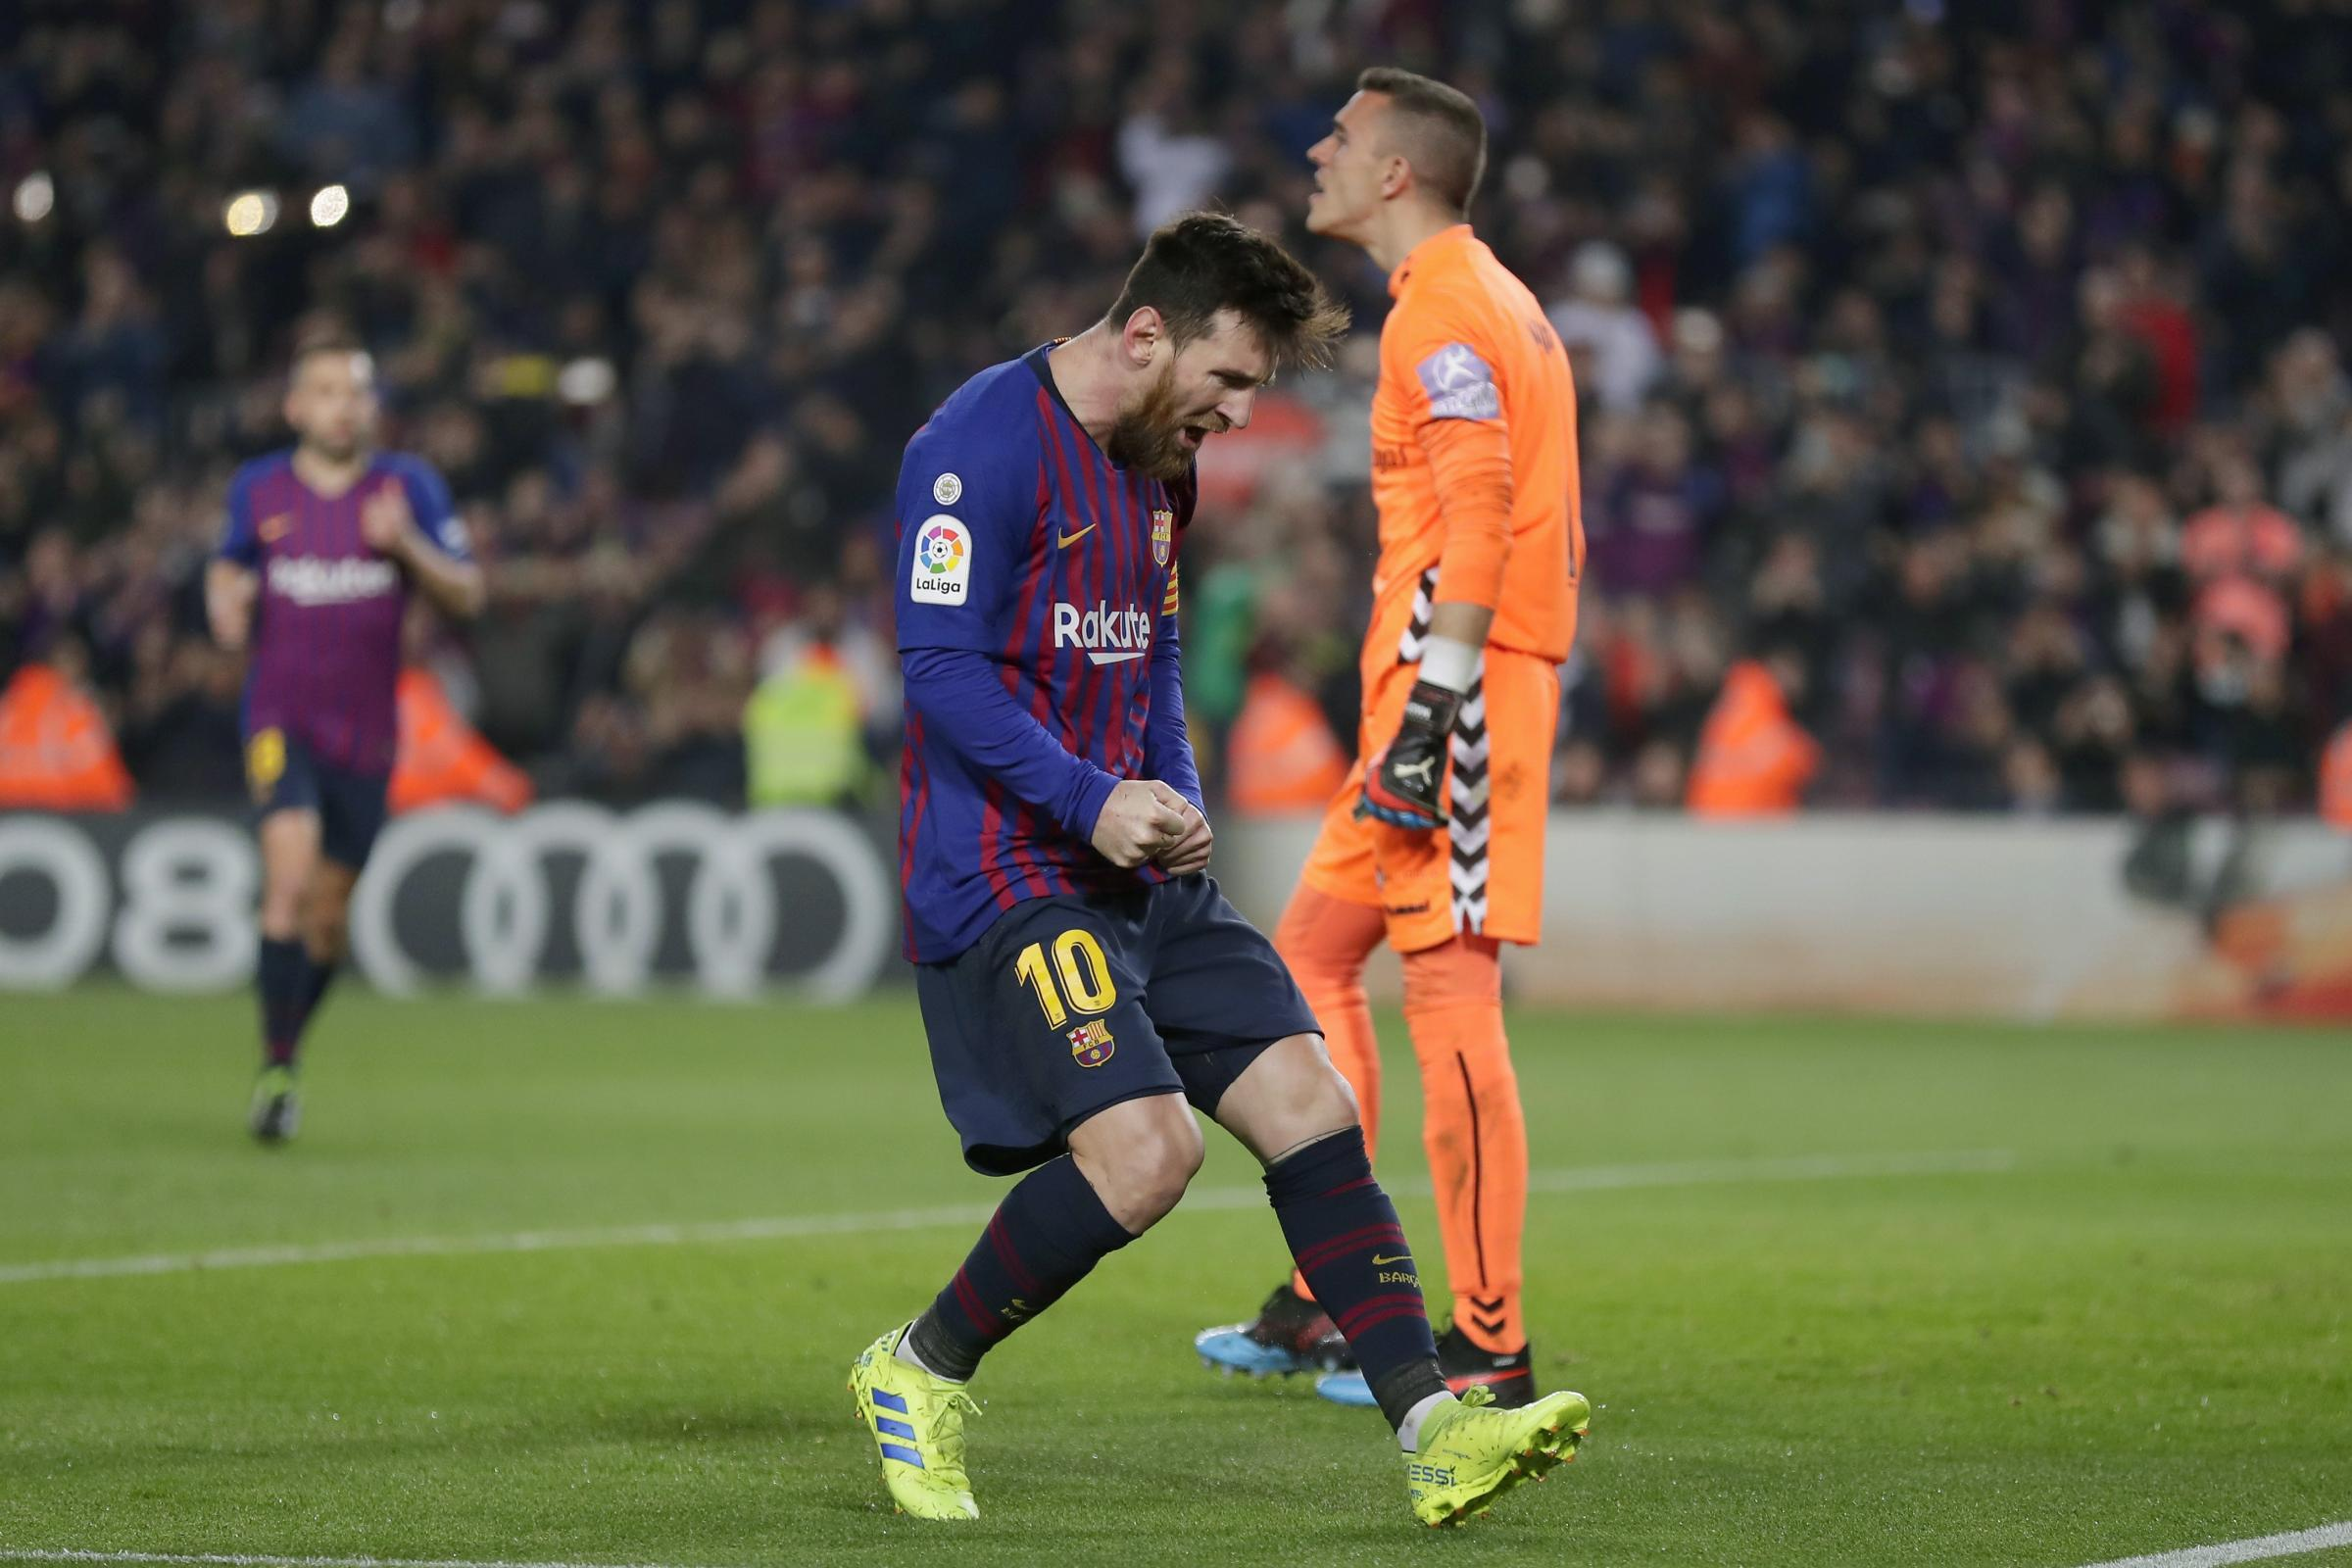 Lionel Messi was on target from the penalty spot just before half-time